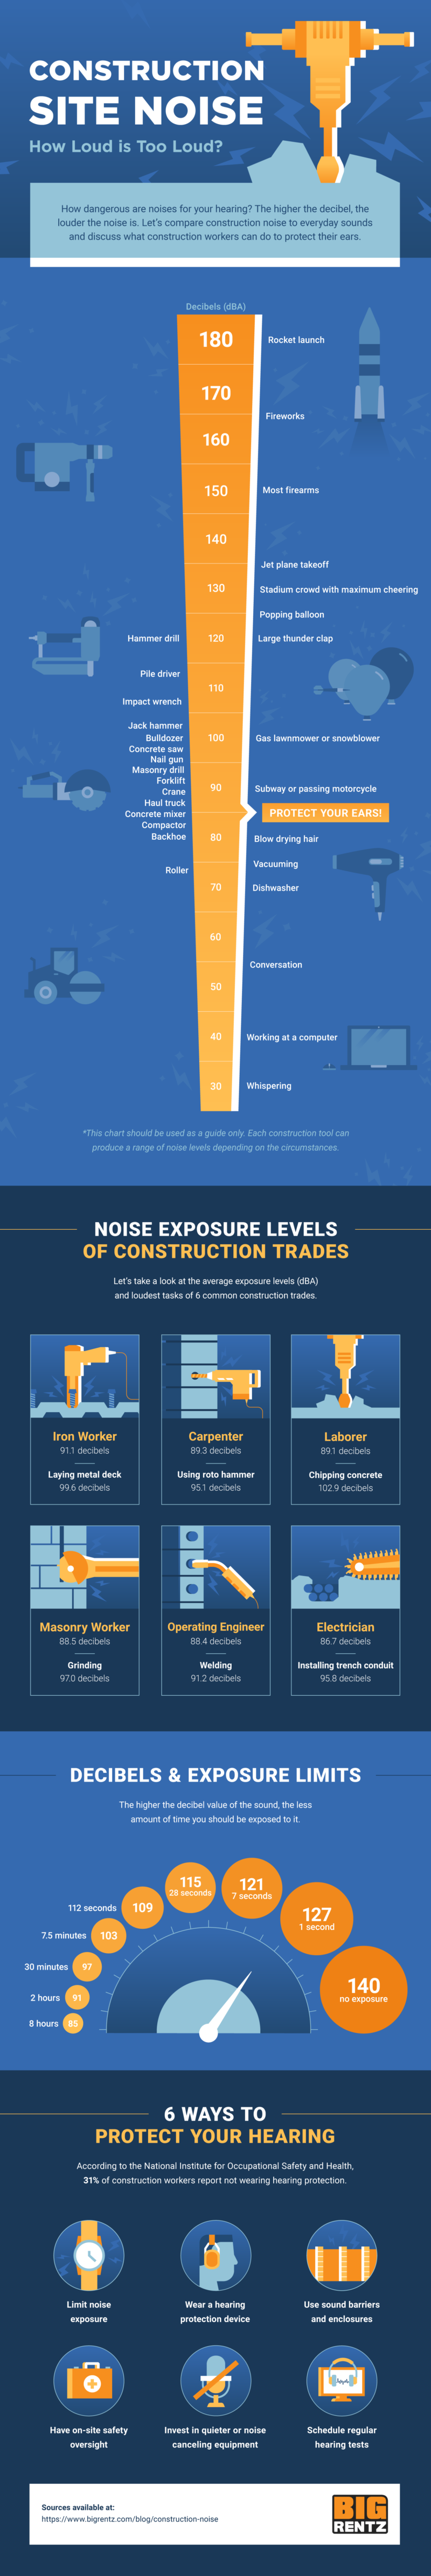 construction-site-noise